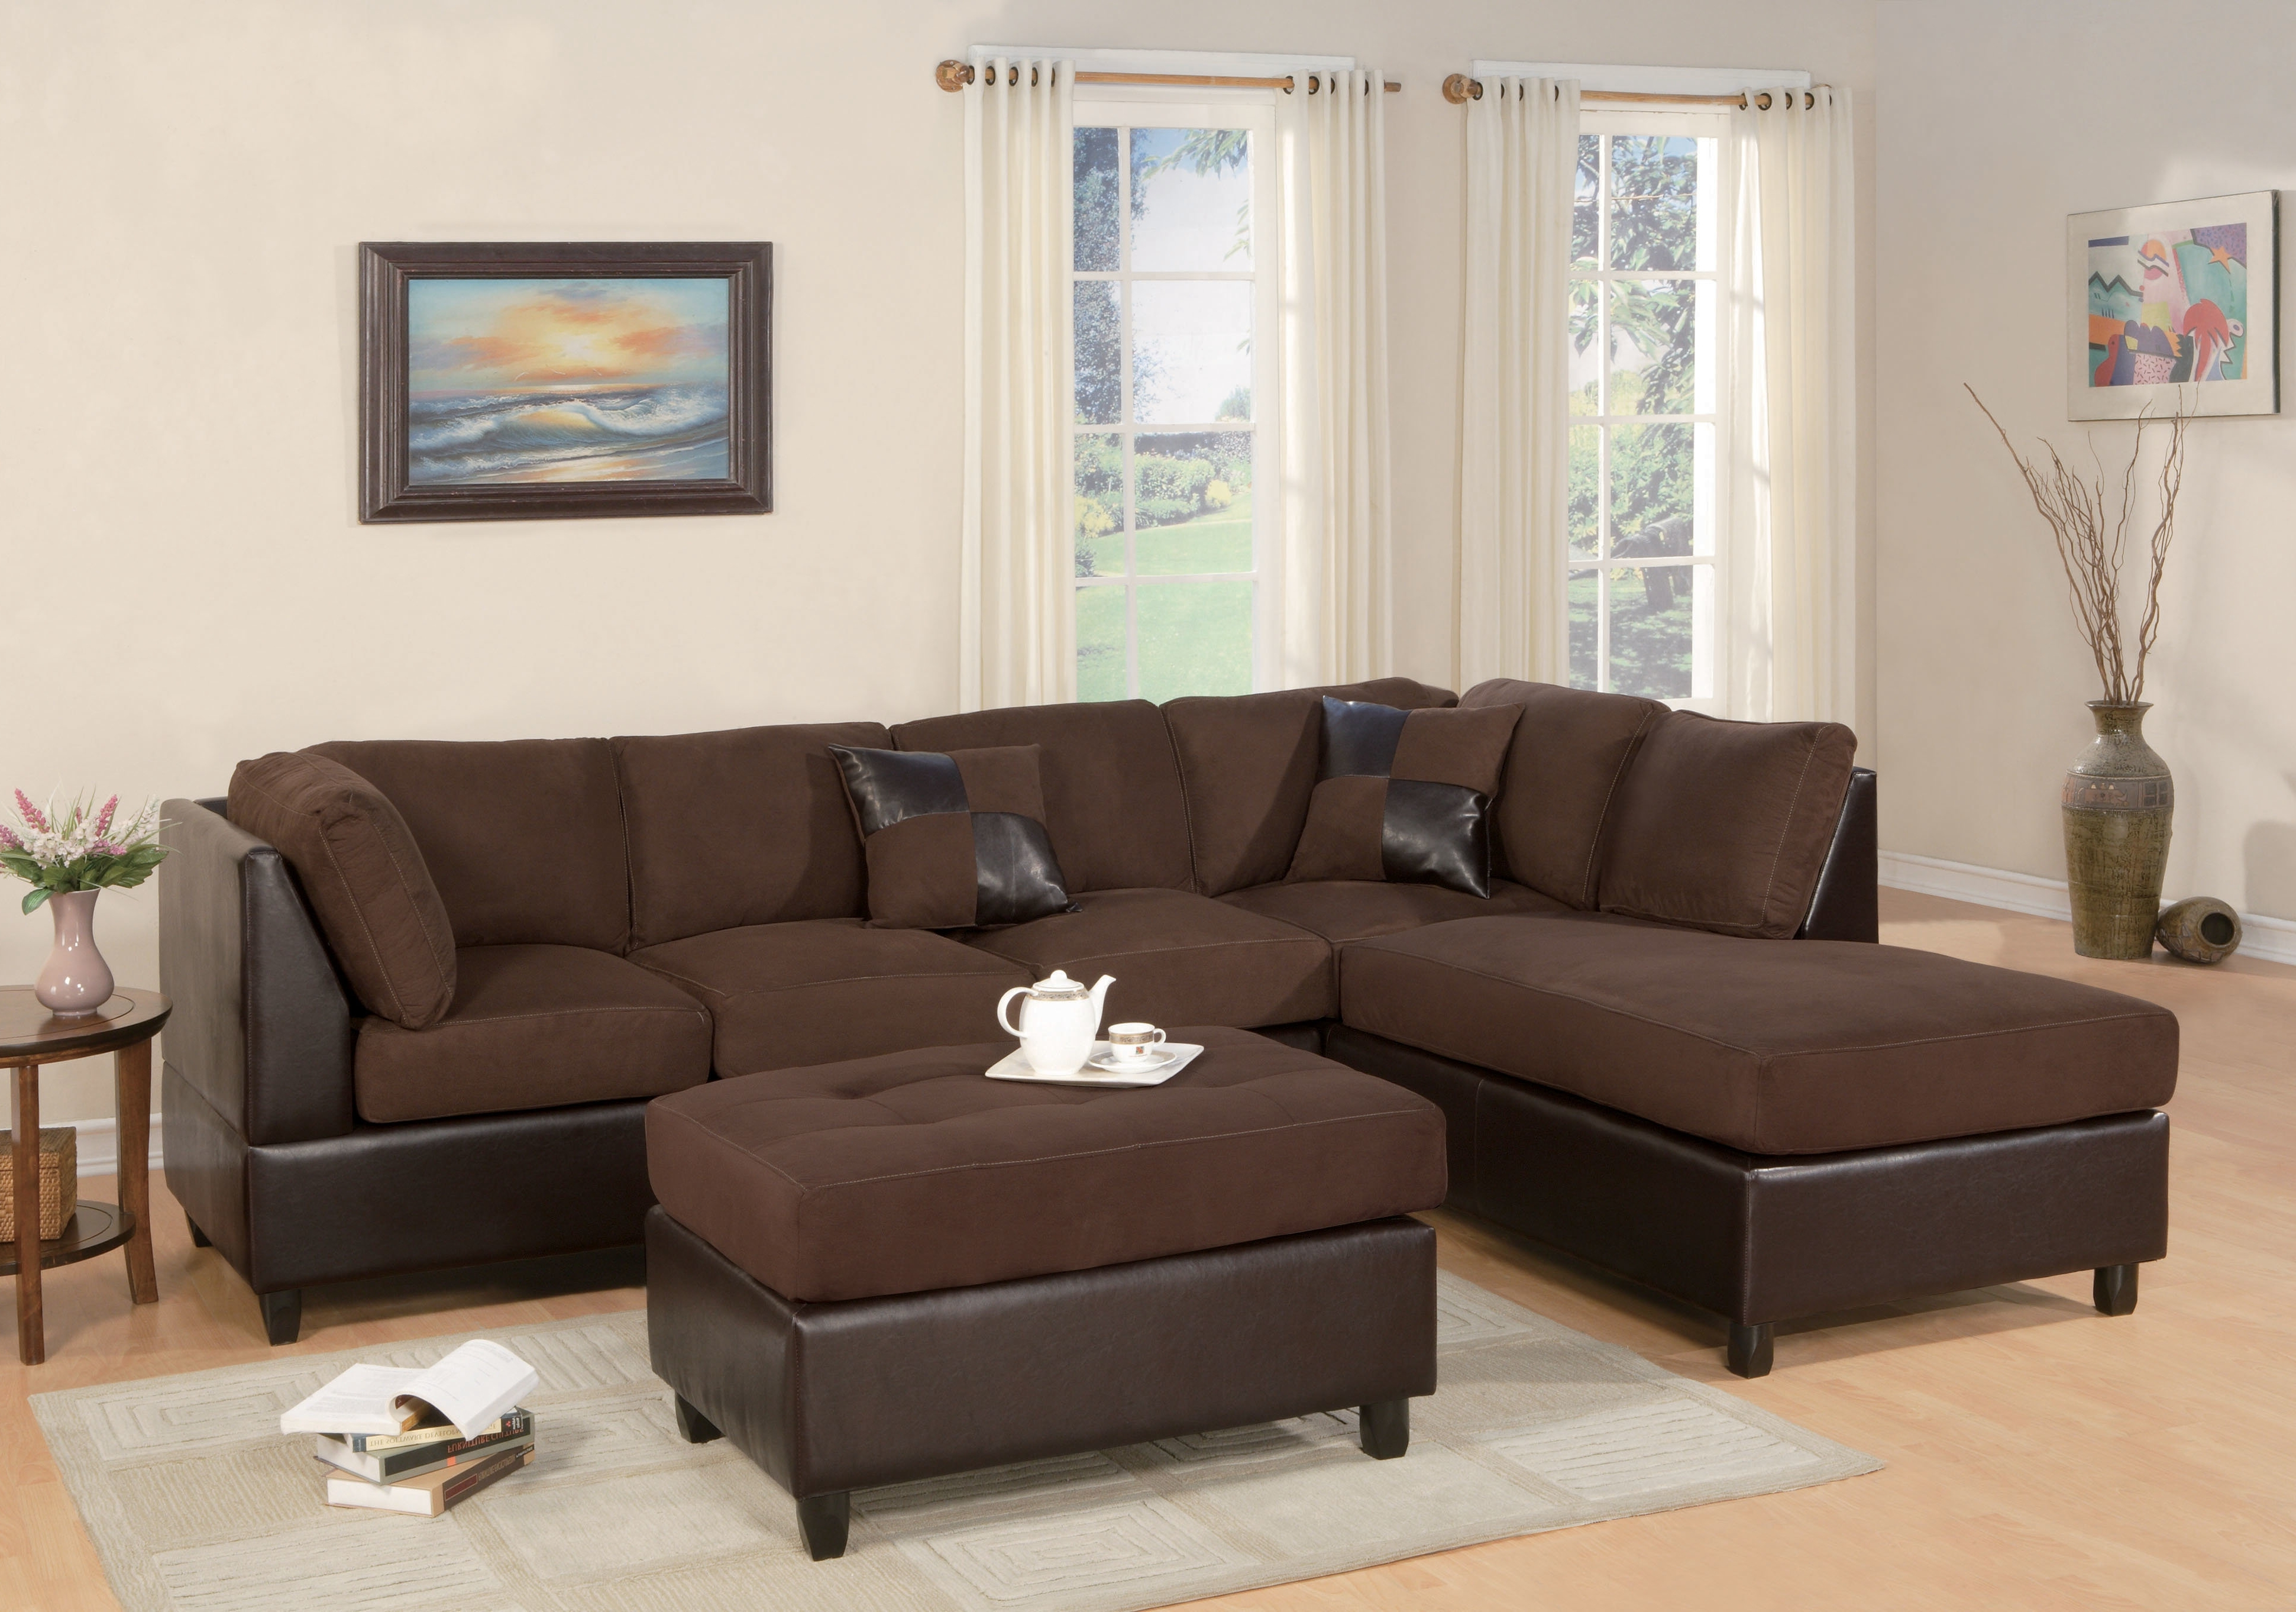 Famous Microfiber Sectional Sofas You'll Love (View 14 of 20)